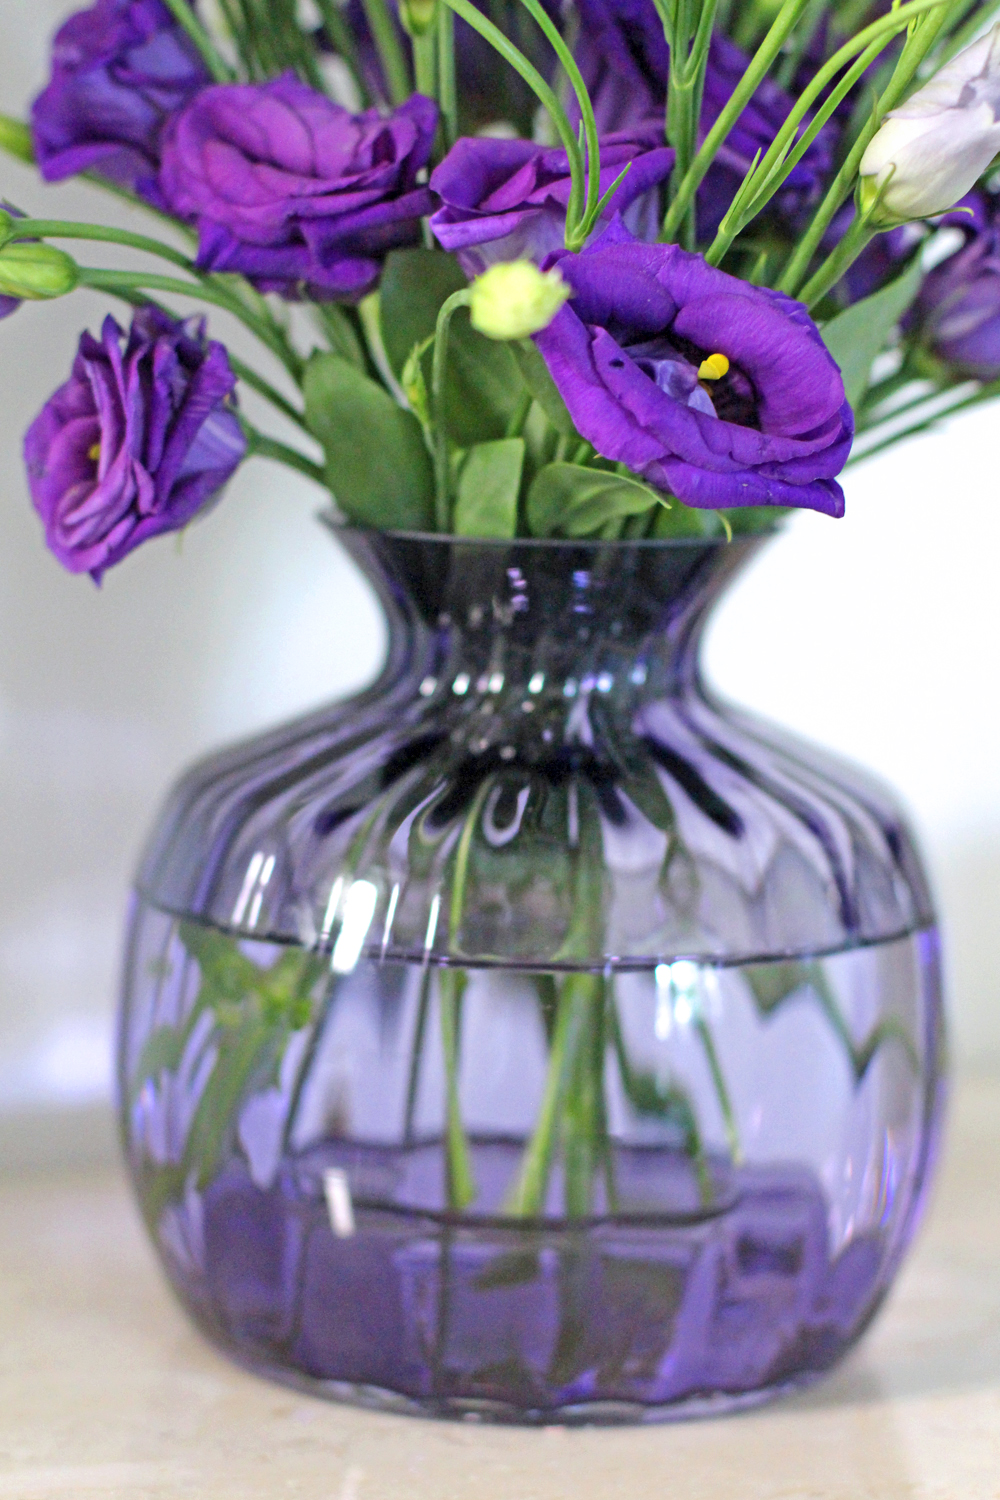 Dartington handmade crystal purple vase - UK style & interiors blog